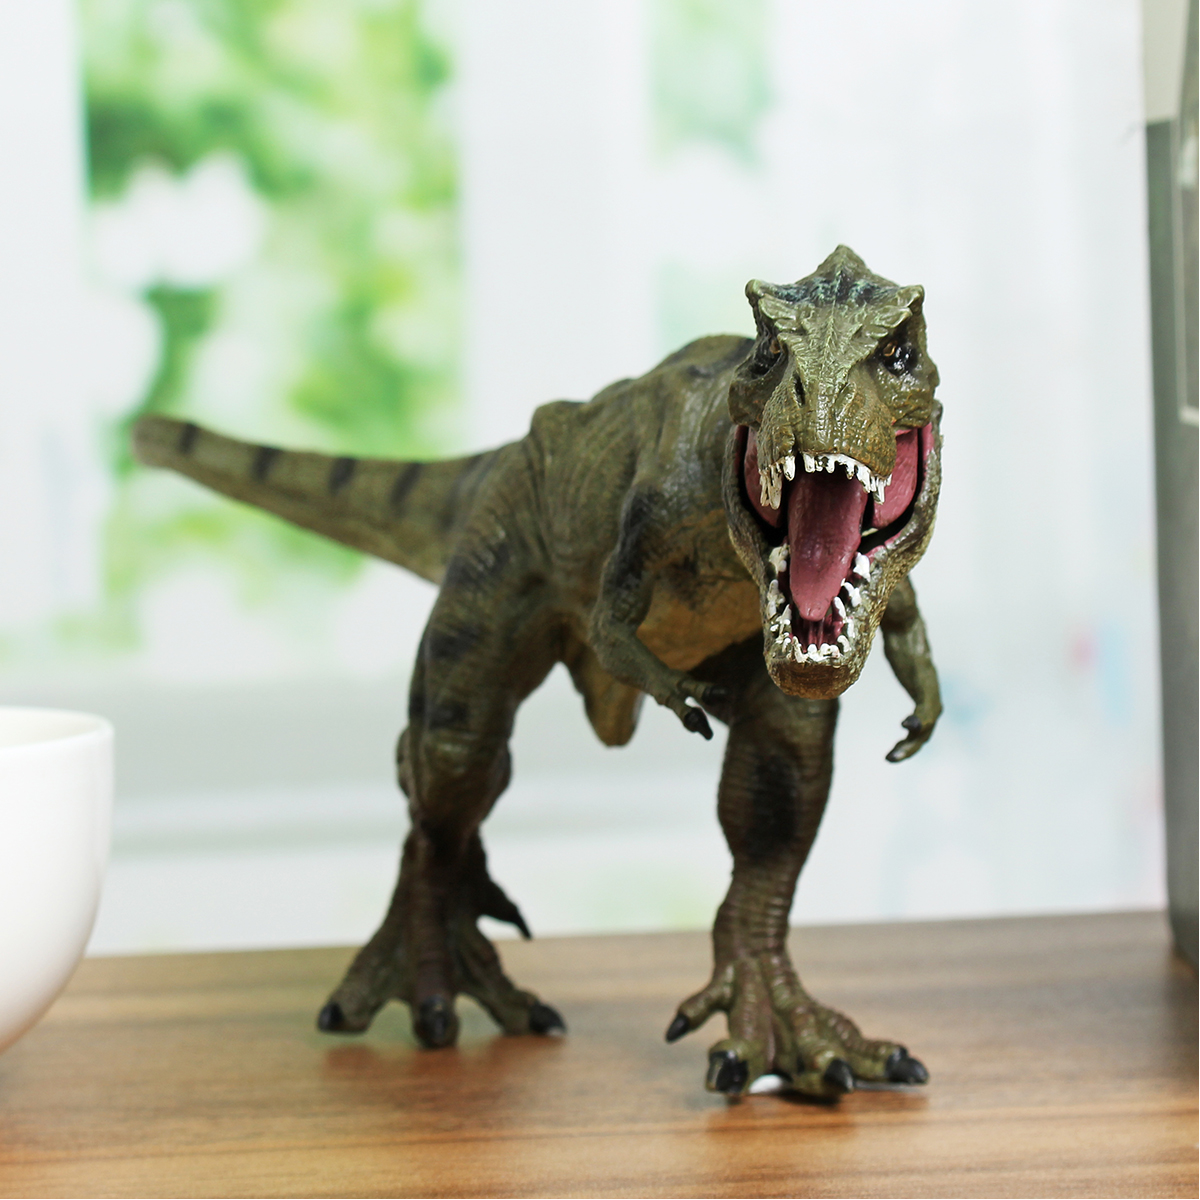 12 Inch Tyrannosaurus Rex Dinosaur Animal Educational Toys Model Kids Gift T-Rex Home Decor